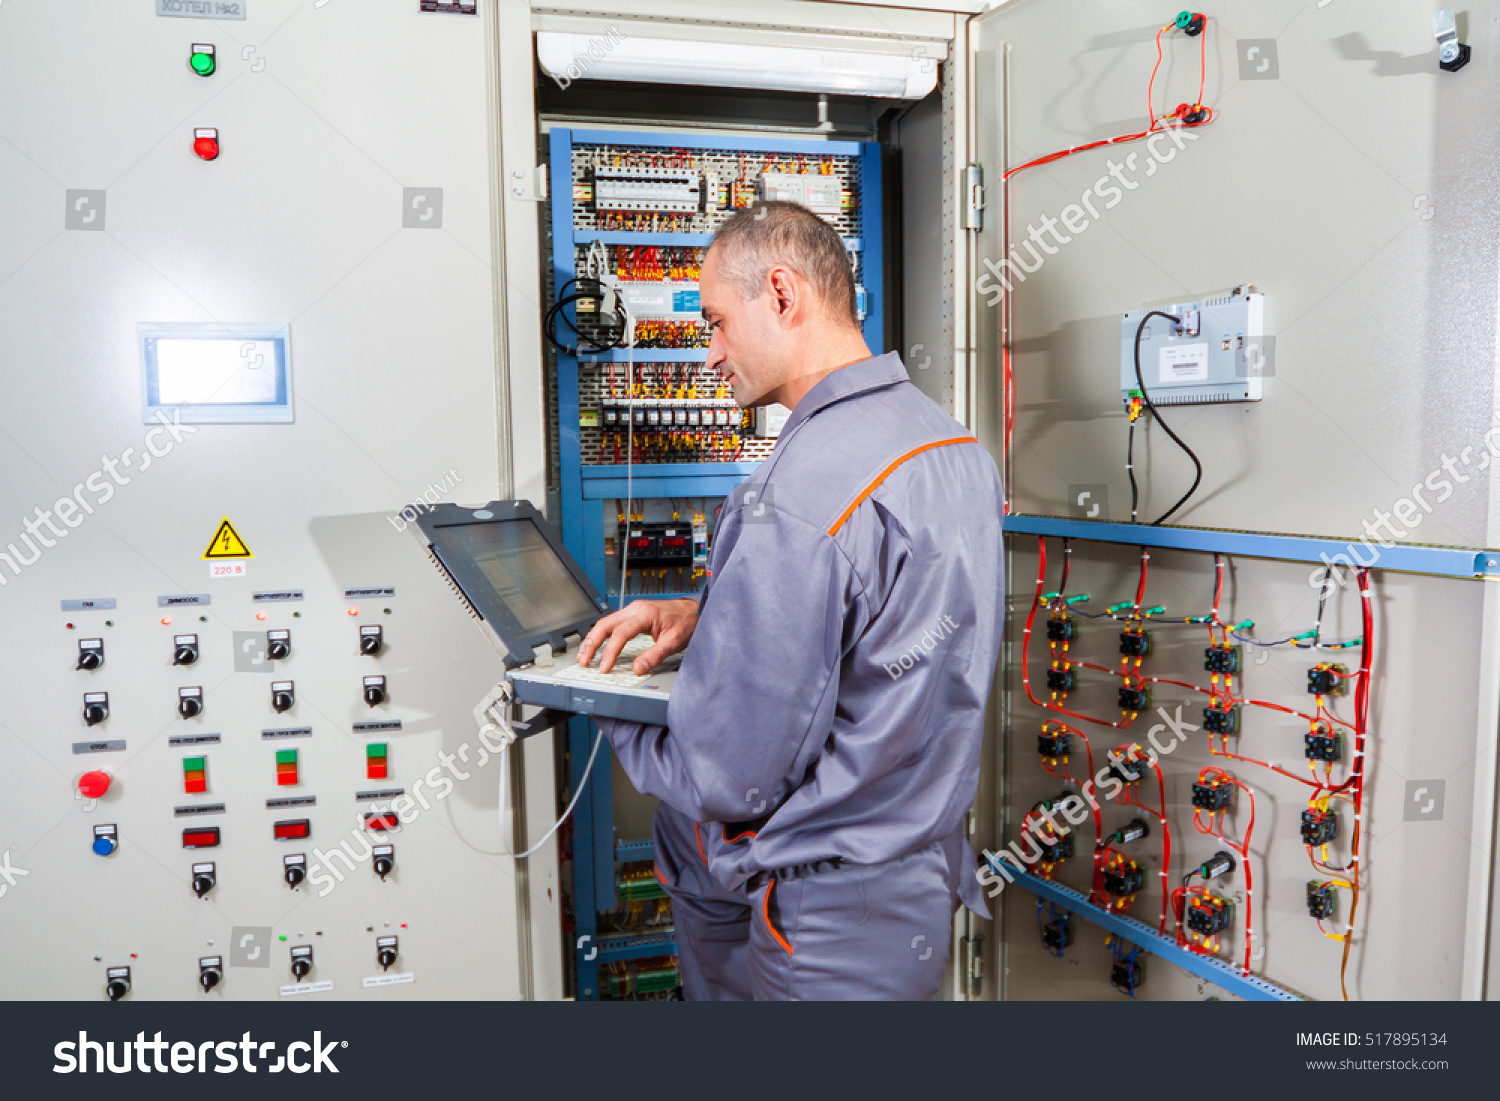 Electrician Builder Engineer Screwing Testing Equipment Stock Photo Fuse Box Circuit And In Industrial Machine Repairing